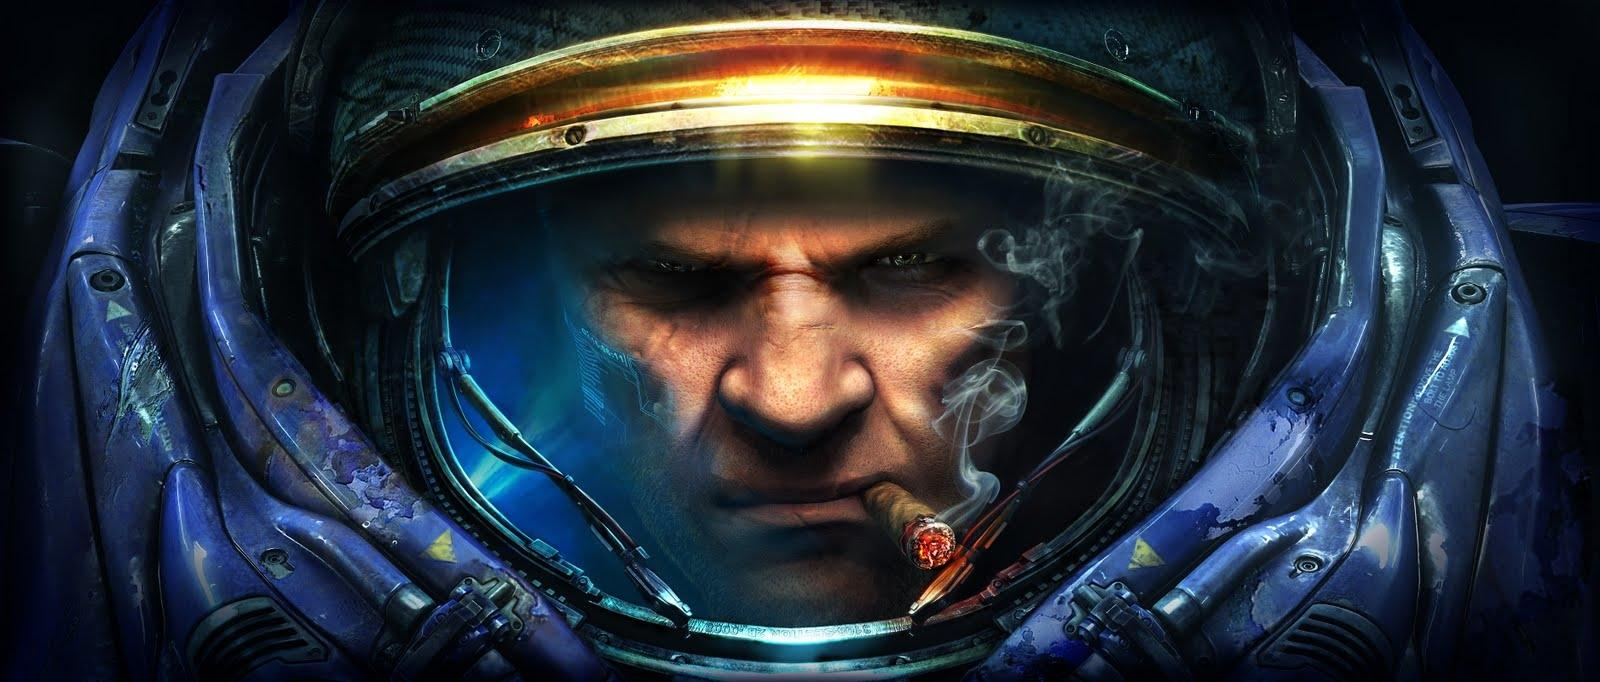 """Hell, it's about time!"": фанатов Starcraft 2 ждет подарок от Blizzard"